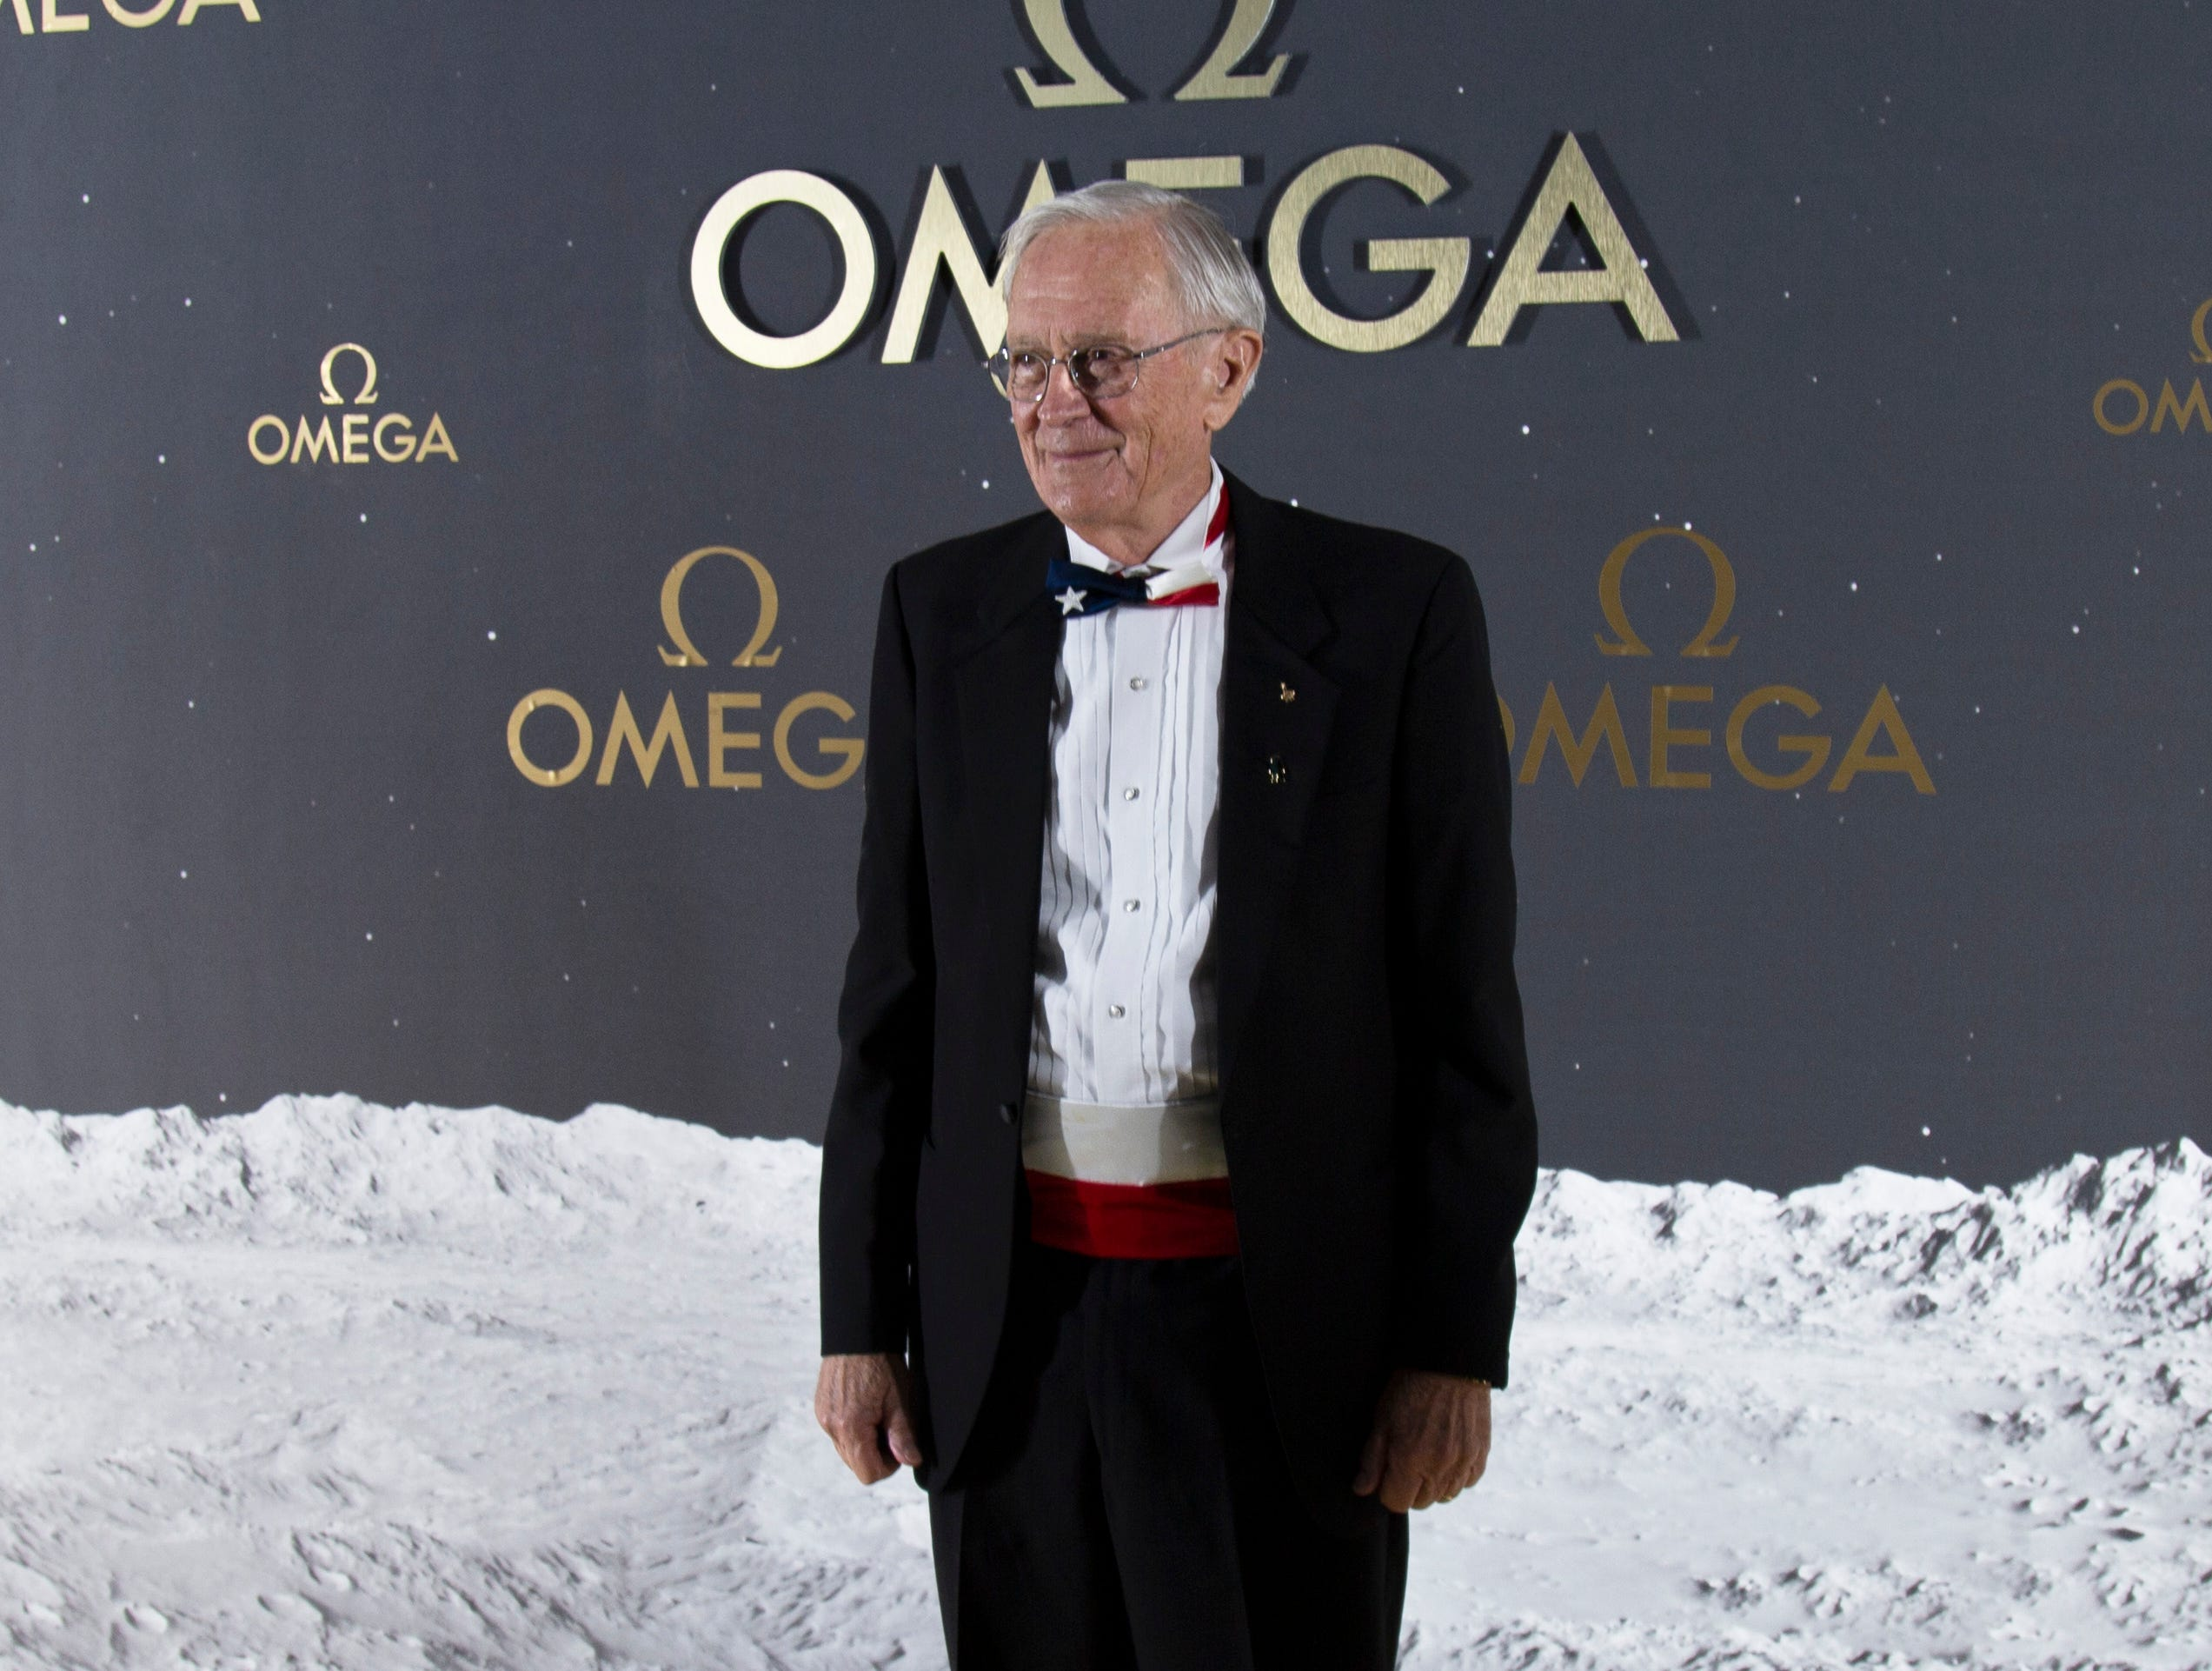 Former astronaut Charles Moss Duke at the red carpet outside the Apollo/Saturn V Center Thursday evening. The Swiss watch brand Omega, which accompanied Apollo 11 astronaut Buzz Aldrin when he walked on the moon's surface nearly 50 years ago, hosted an event honoring the 50th anniversary of the moon landing at the Apollo/Saturn V Center at the Kennedy Space Center. Those who attended the black-tie dinner included actor George Clooney,  as well as former astronauts Thomas Stafford and Charles Moss Duke.